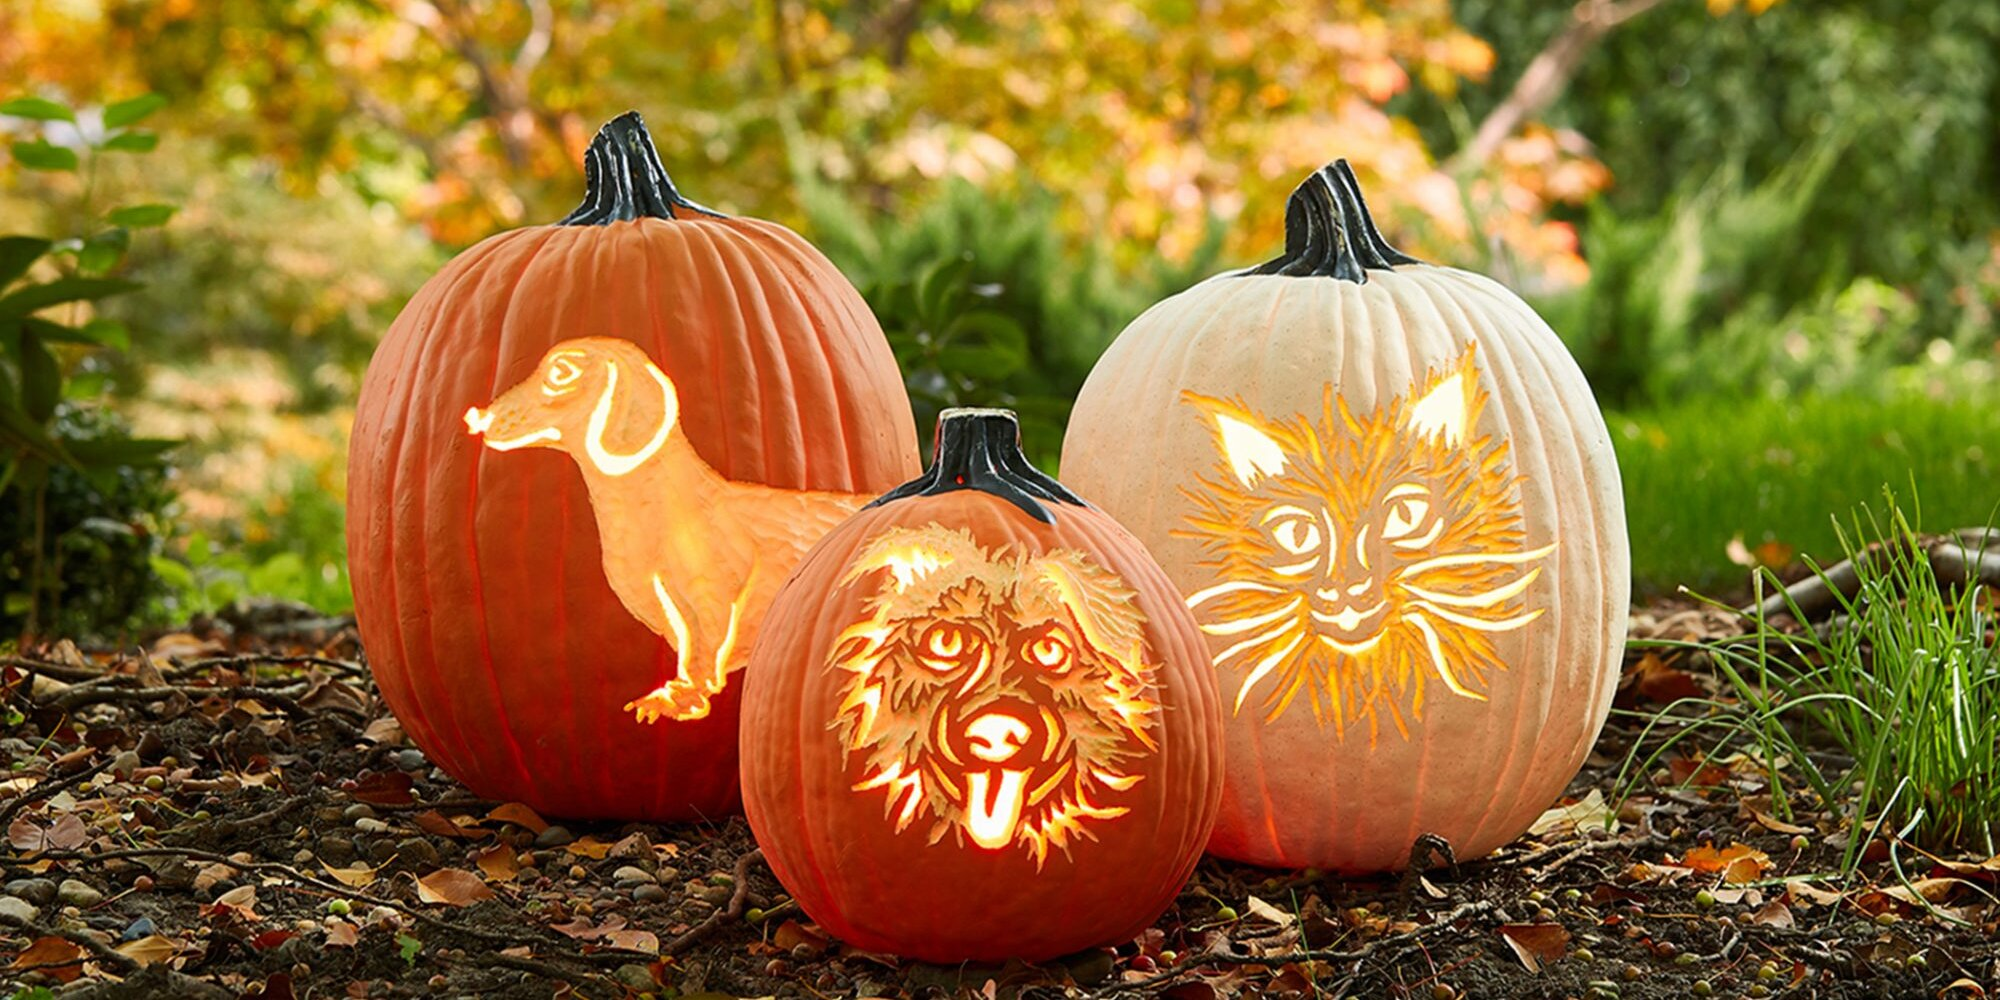 How to Carve Your Pet's Face on a Pumpkin for Halloween